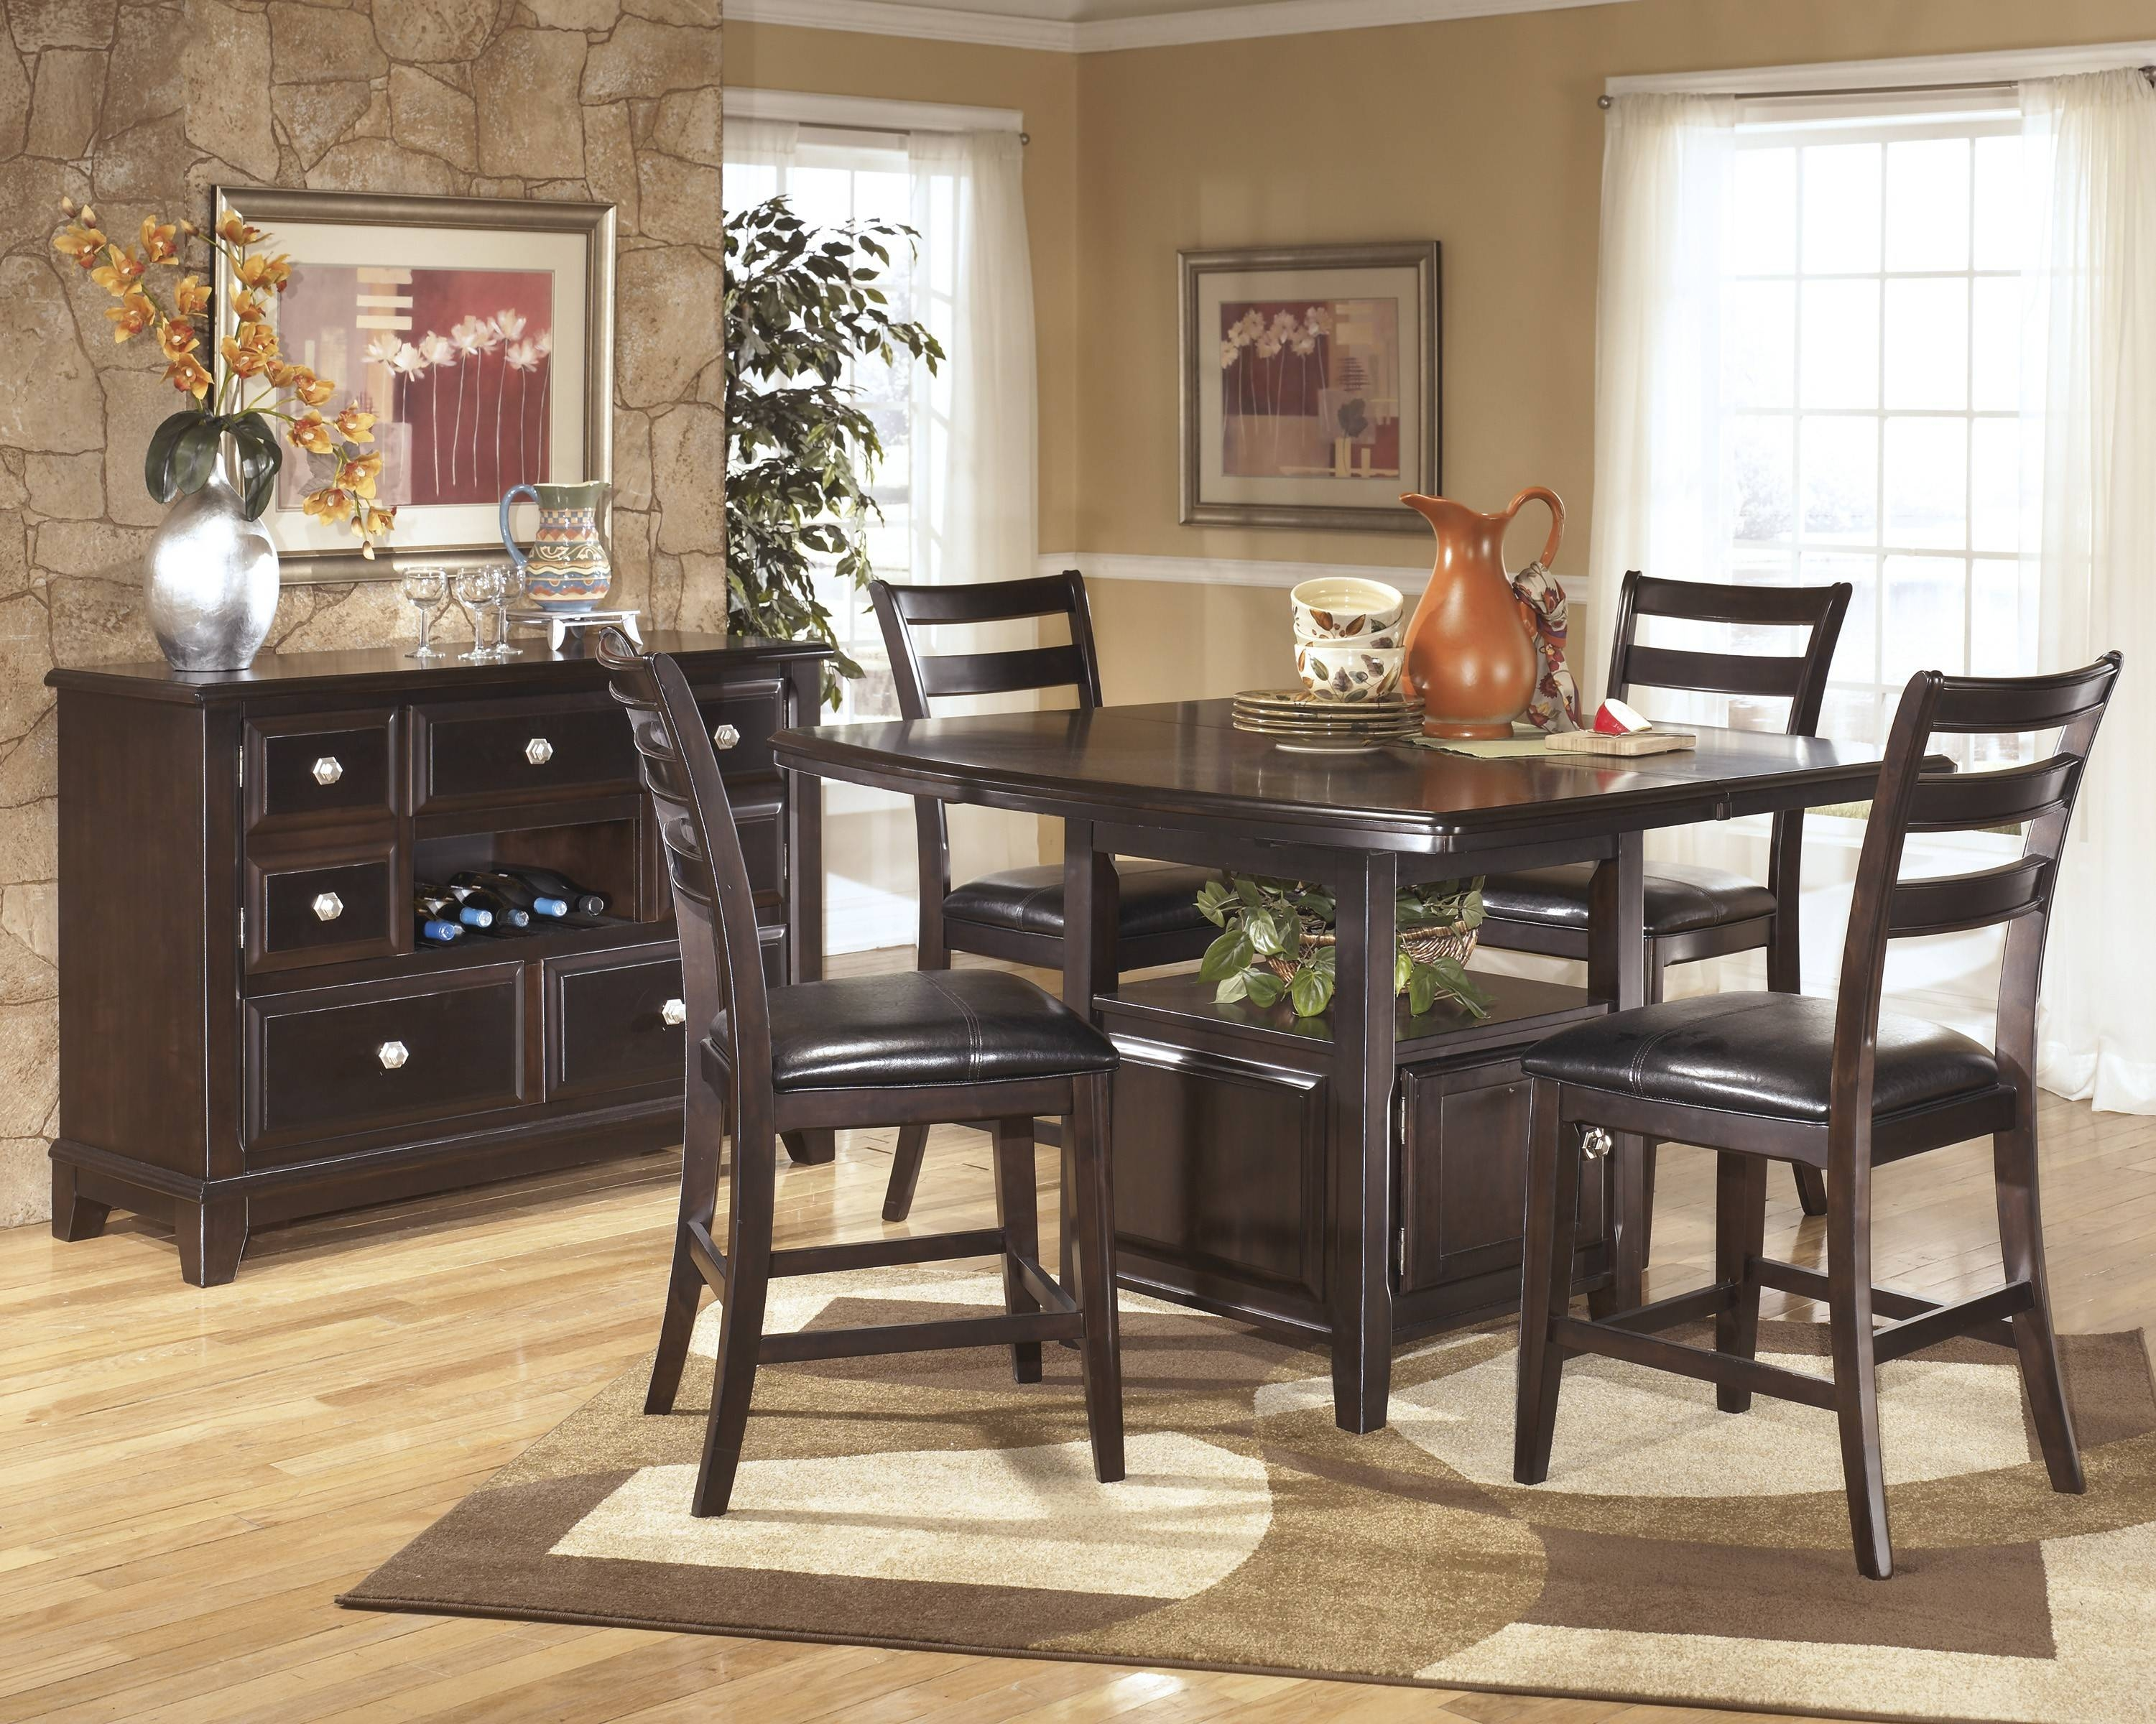 Ridgley Dark Brown 6 Pc Counter Height Dining Table Barstools And With Regard To Black Dining Room Sideboards (View 4 of 15)